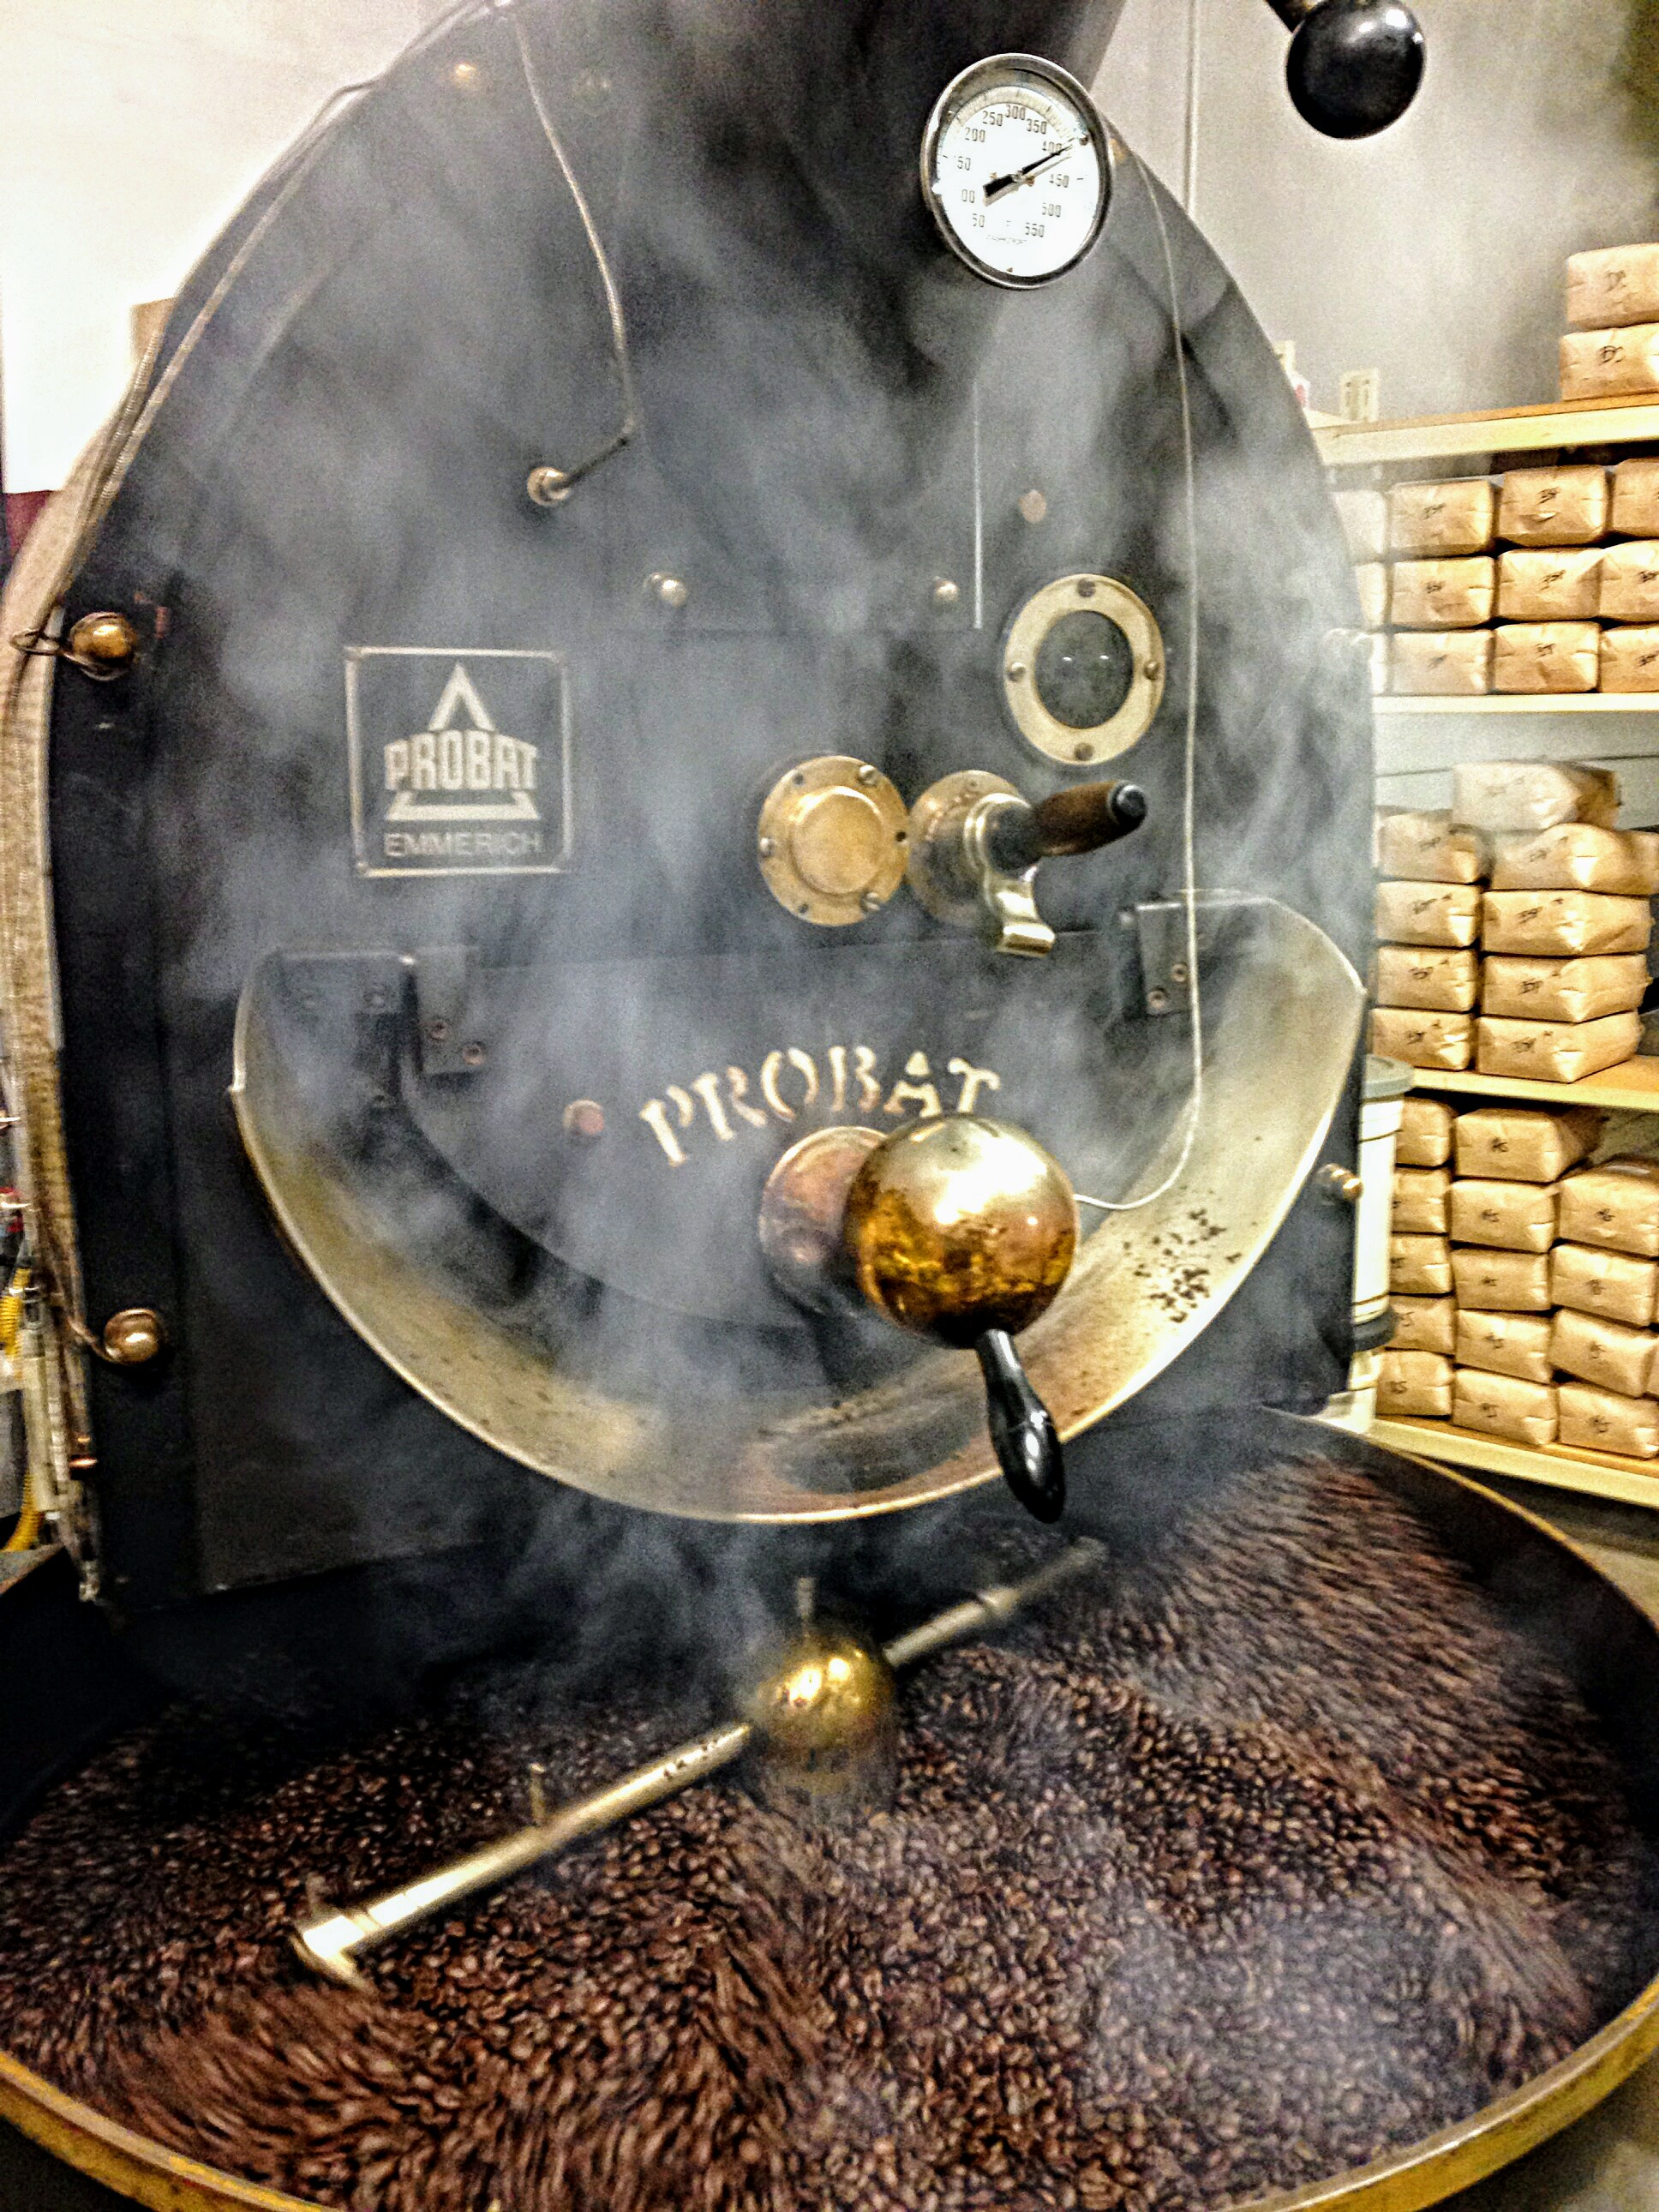 Probat Coffee Roaster in action